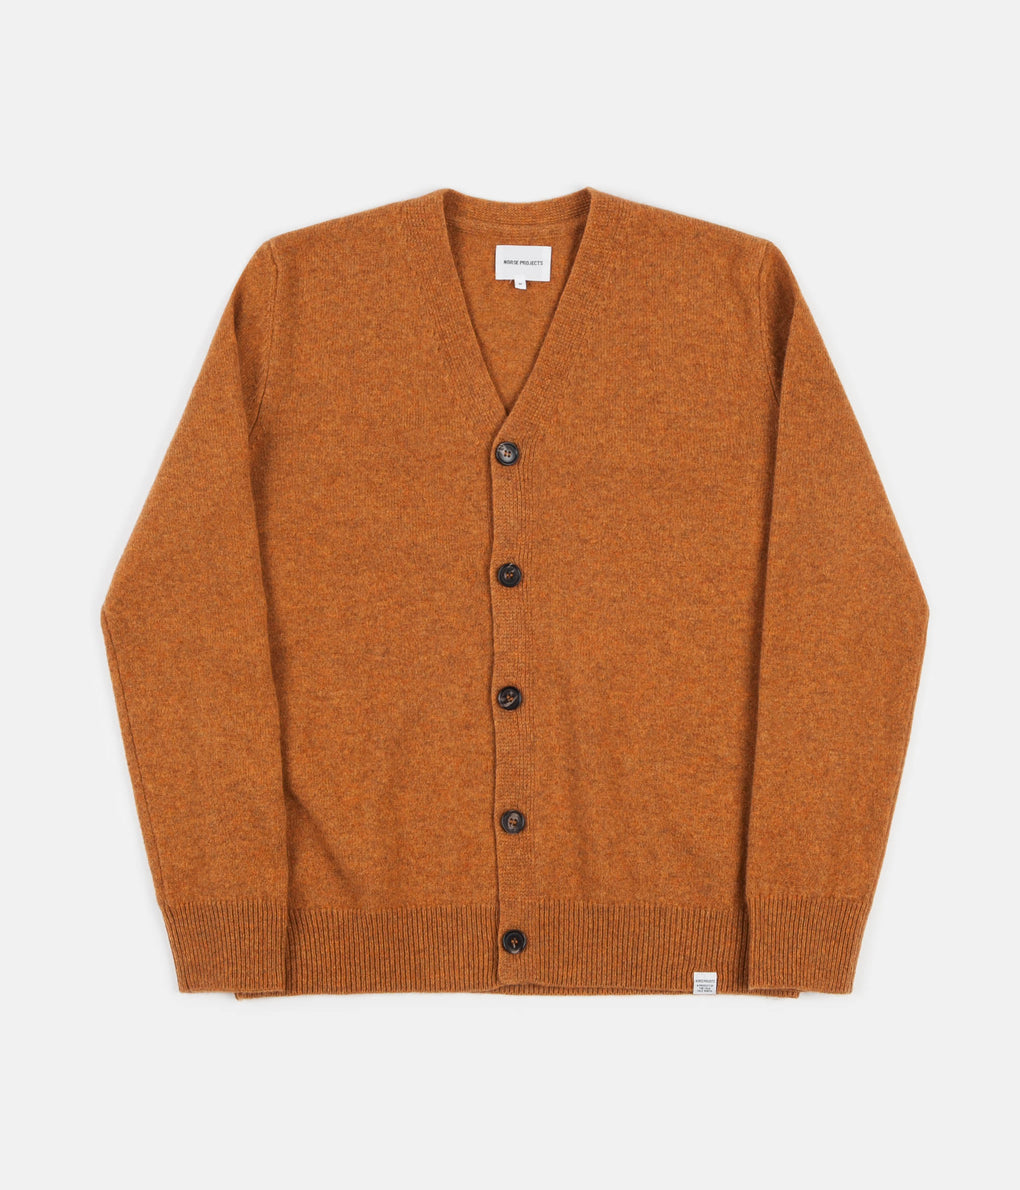 Norse Projects Adam Lambswool Cardigan - Montpellier Yellow